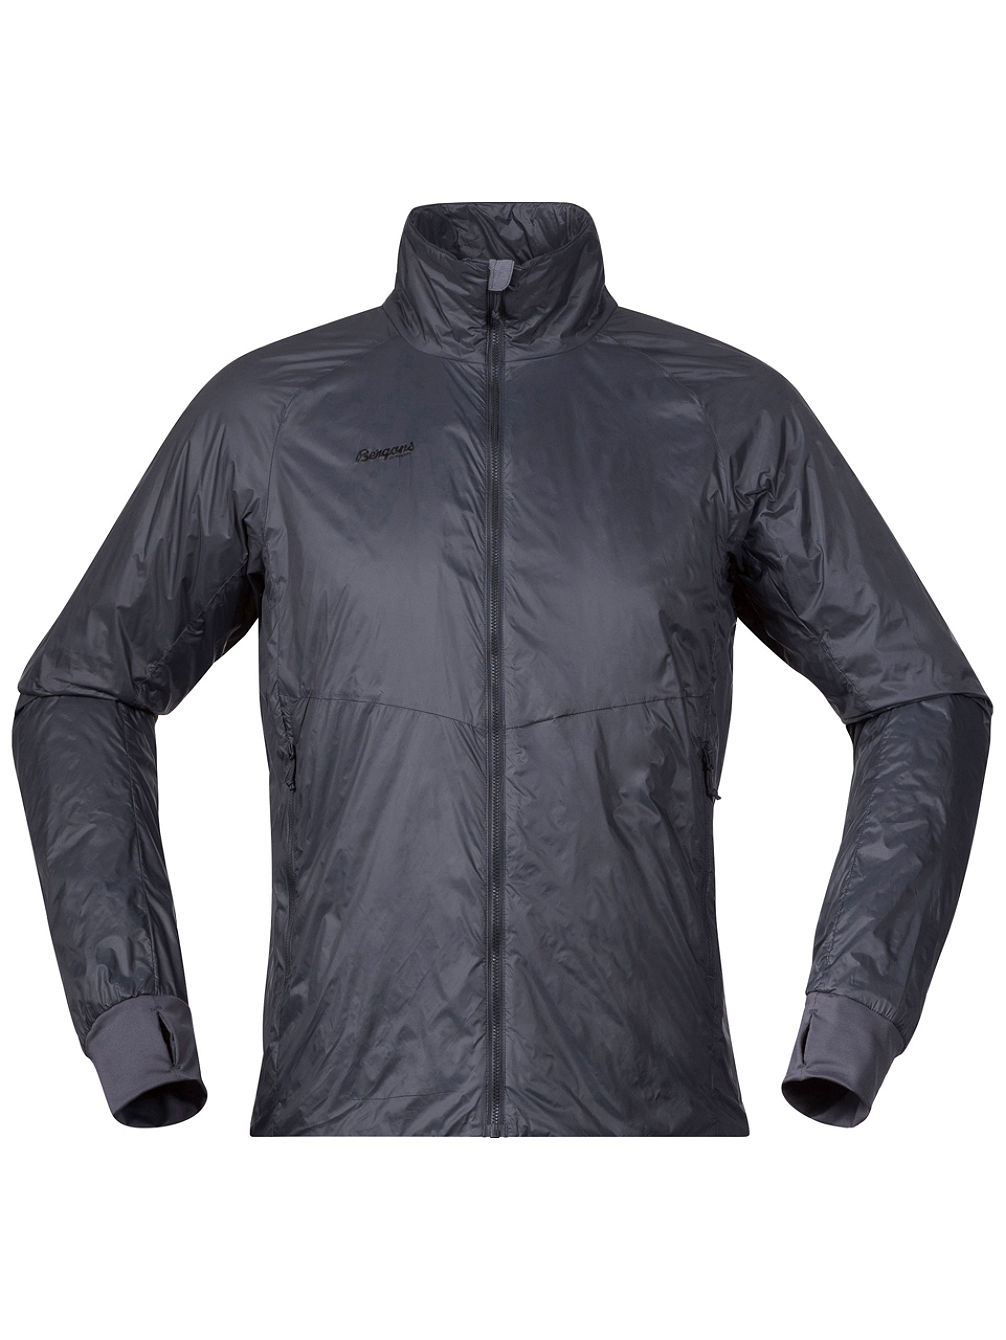 Lom Lt Insulated Hybrid Outdoor Jacket